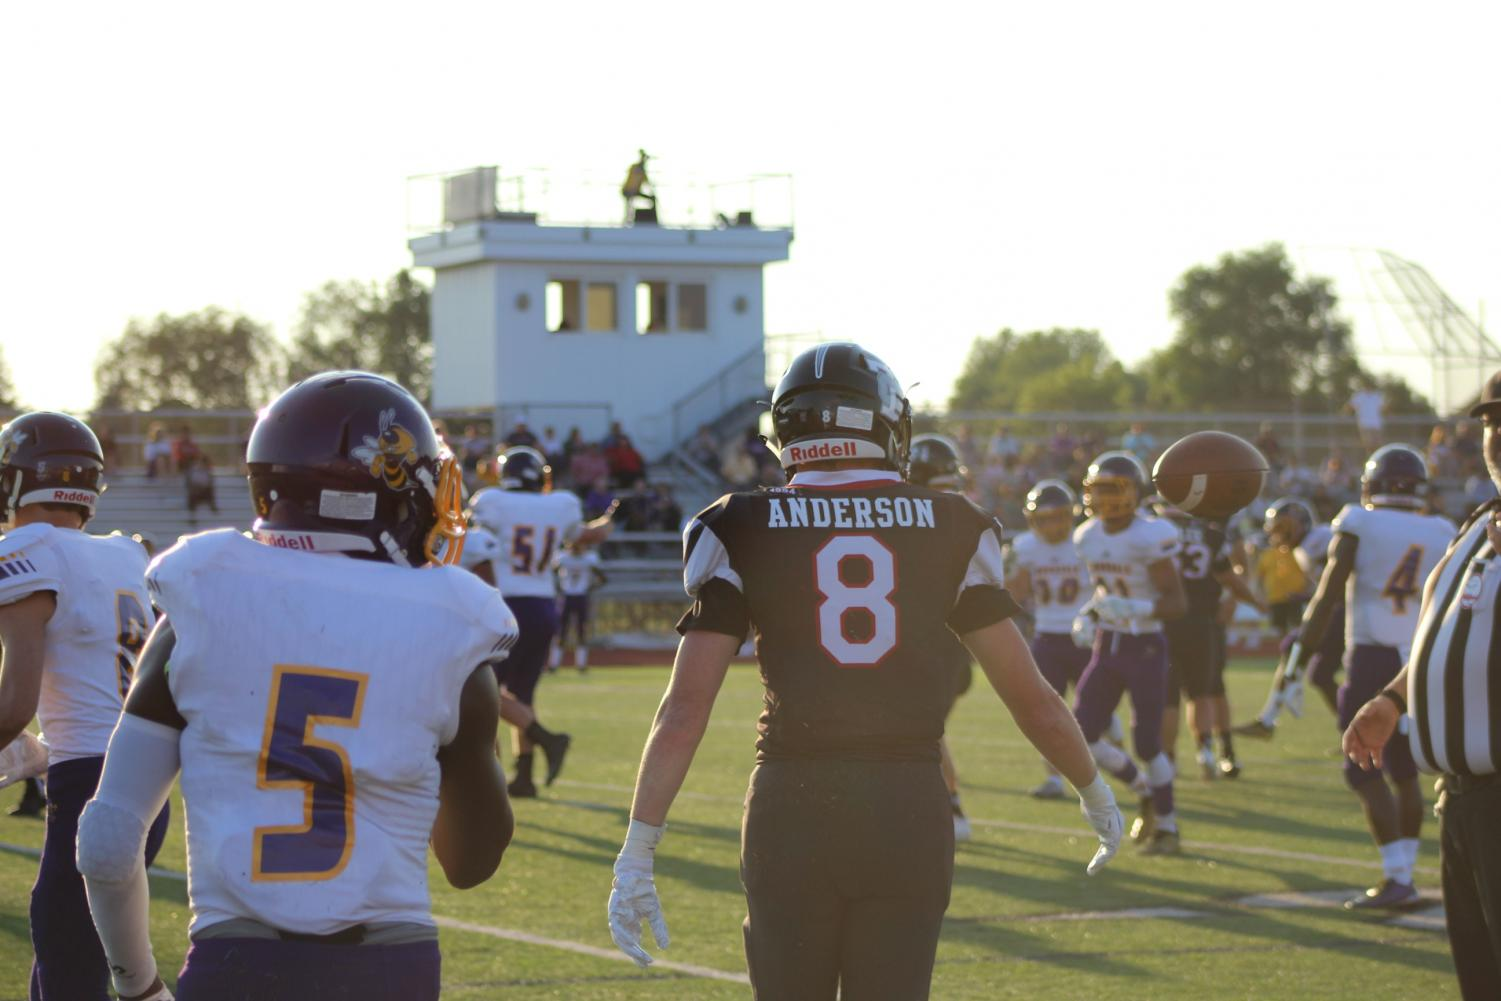 Junior Blake Anderson walks onto the field during the Colts' game against Avondale on Aug. 23.